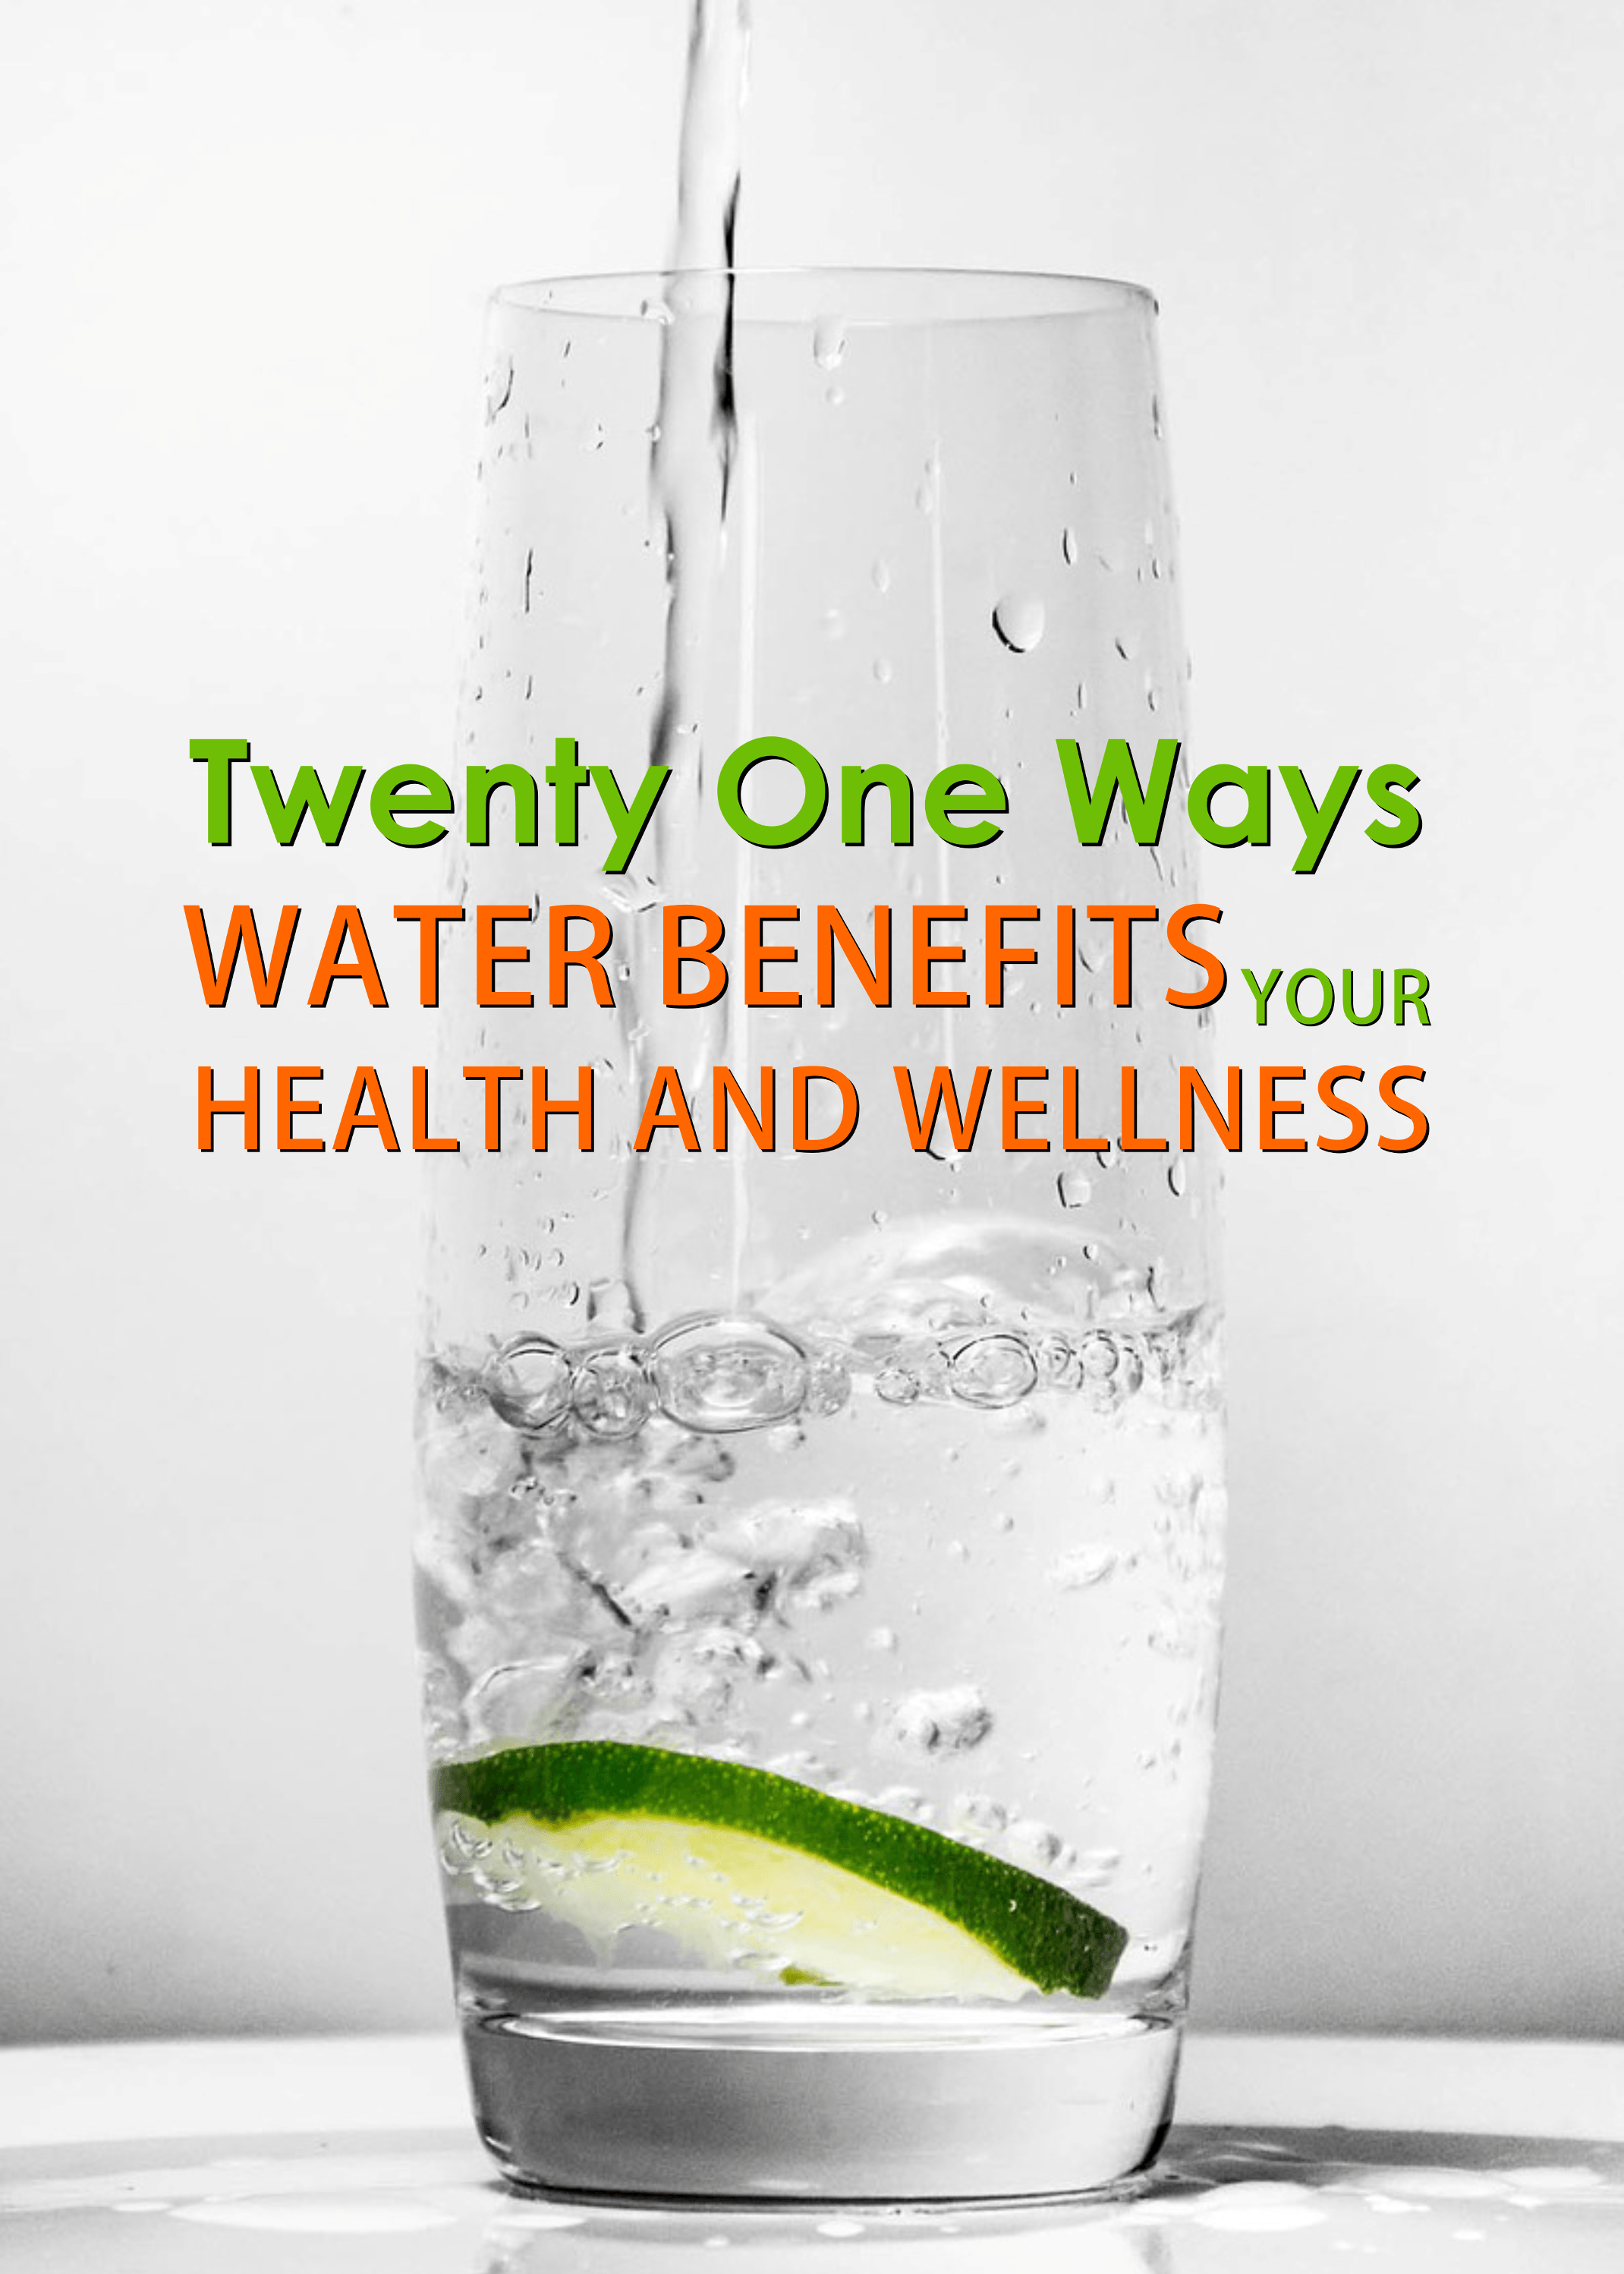 The benefits of water can do wonders for your health and mind. Subsequently, you'll notice that all aspects of your life are enhanced. You can become more productive and get more work done by remaining increasingly focused. Start drinking more water to live a happier, healthier, and lengthier life.